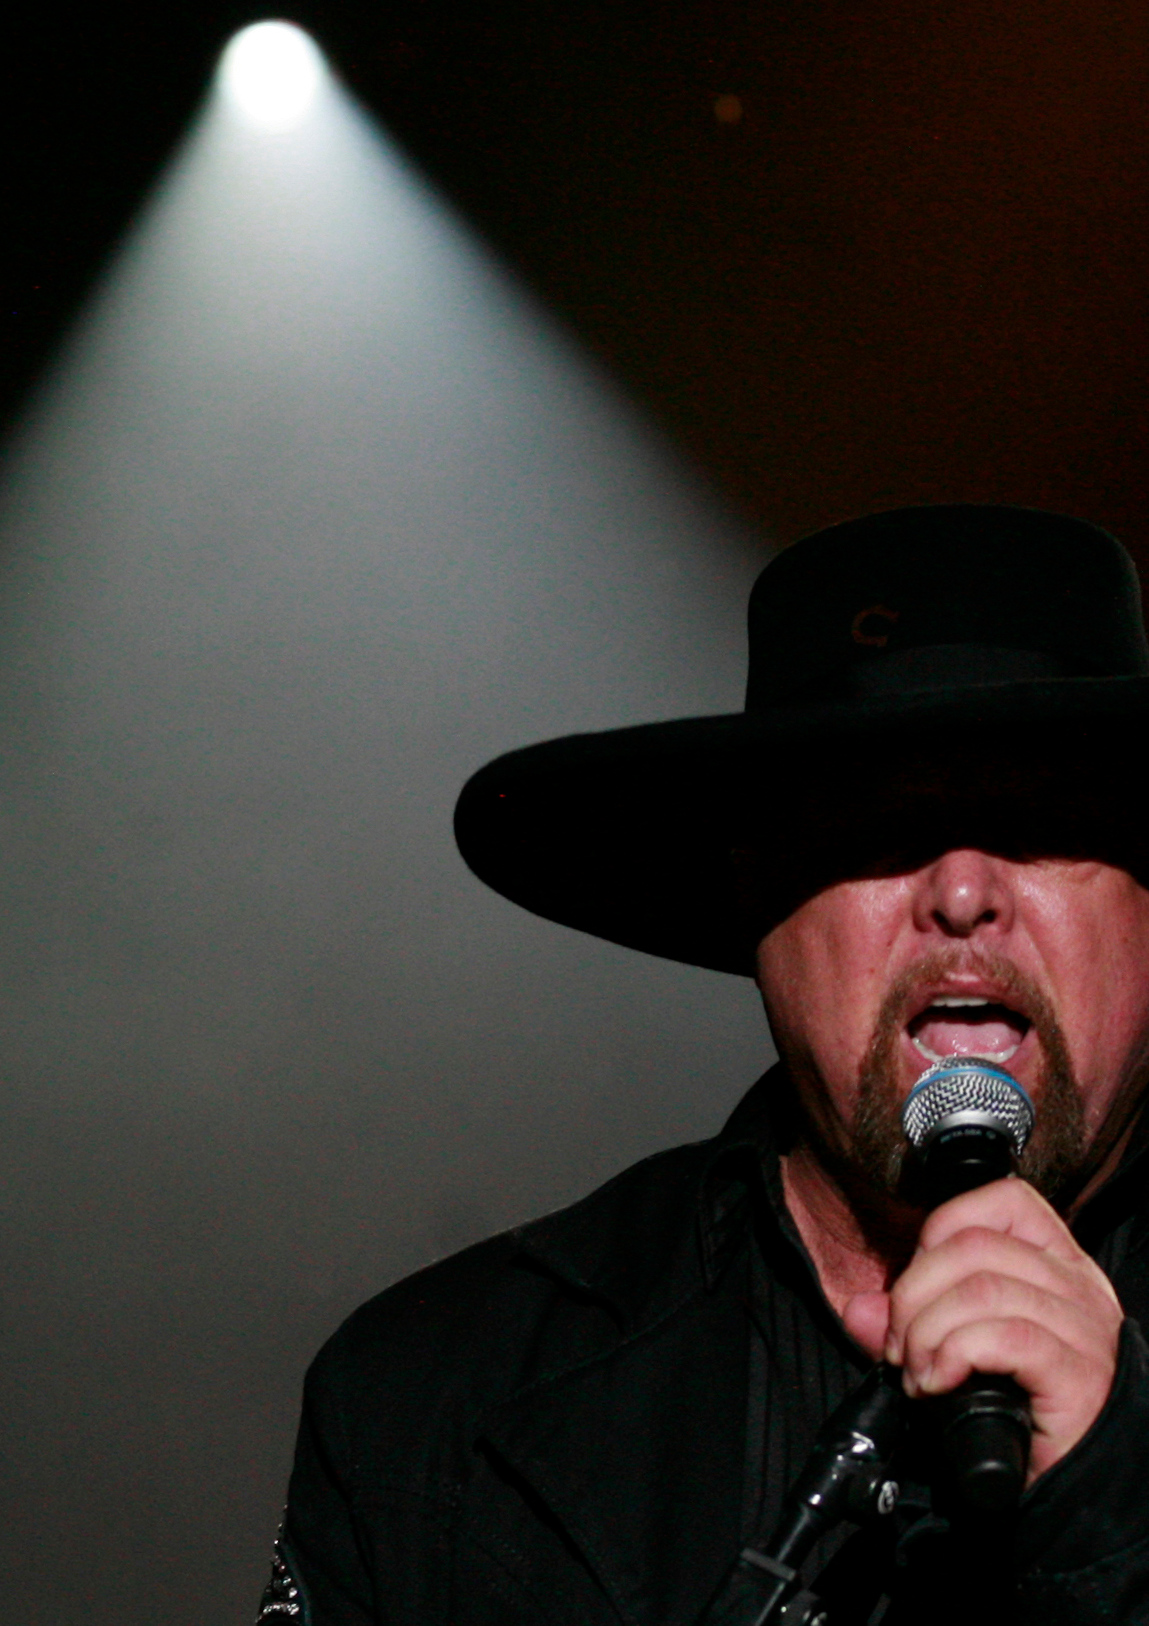 Country Music Award-winning band Montgomery Gentry performs at Stampede Saturday night. Eddie Gentry donned his signature hat and sang old and new songs for the crowd.